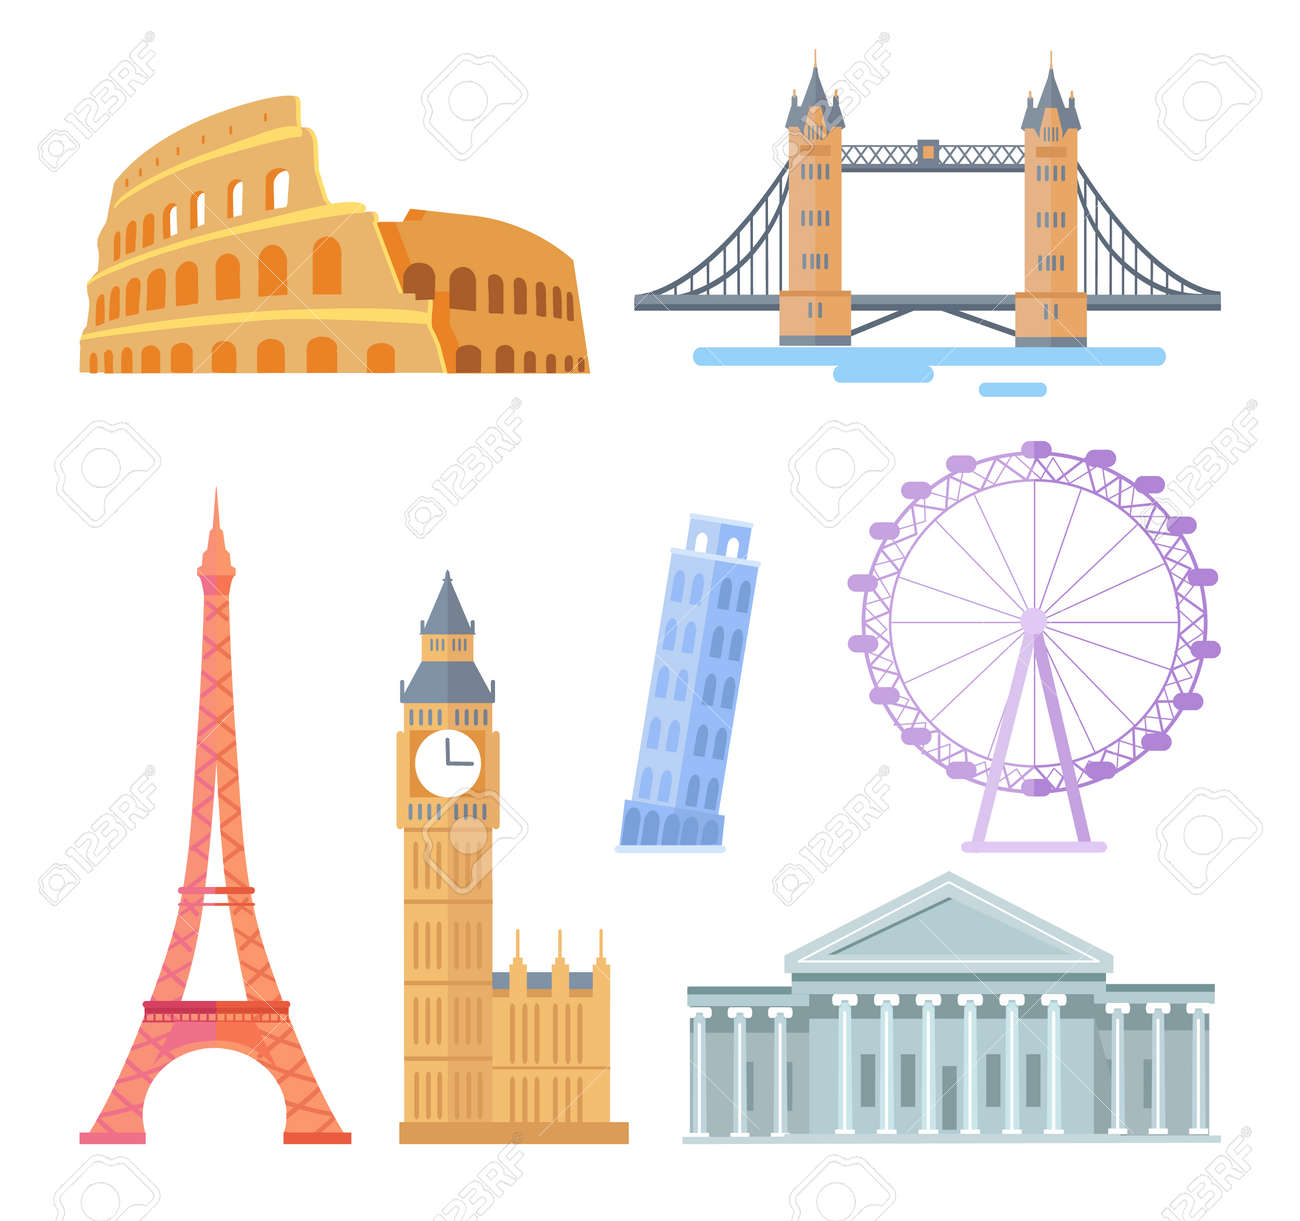 Popular world touristic architectural sights set. Famous attractions and travel destinations. Buildings with statues isolated vector illustrations. - 112004254